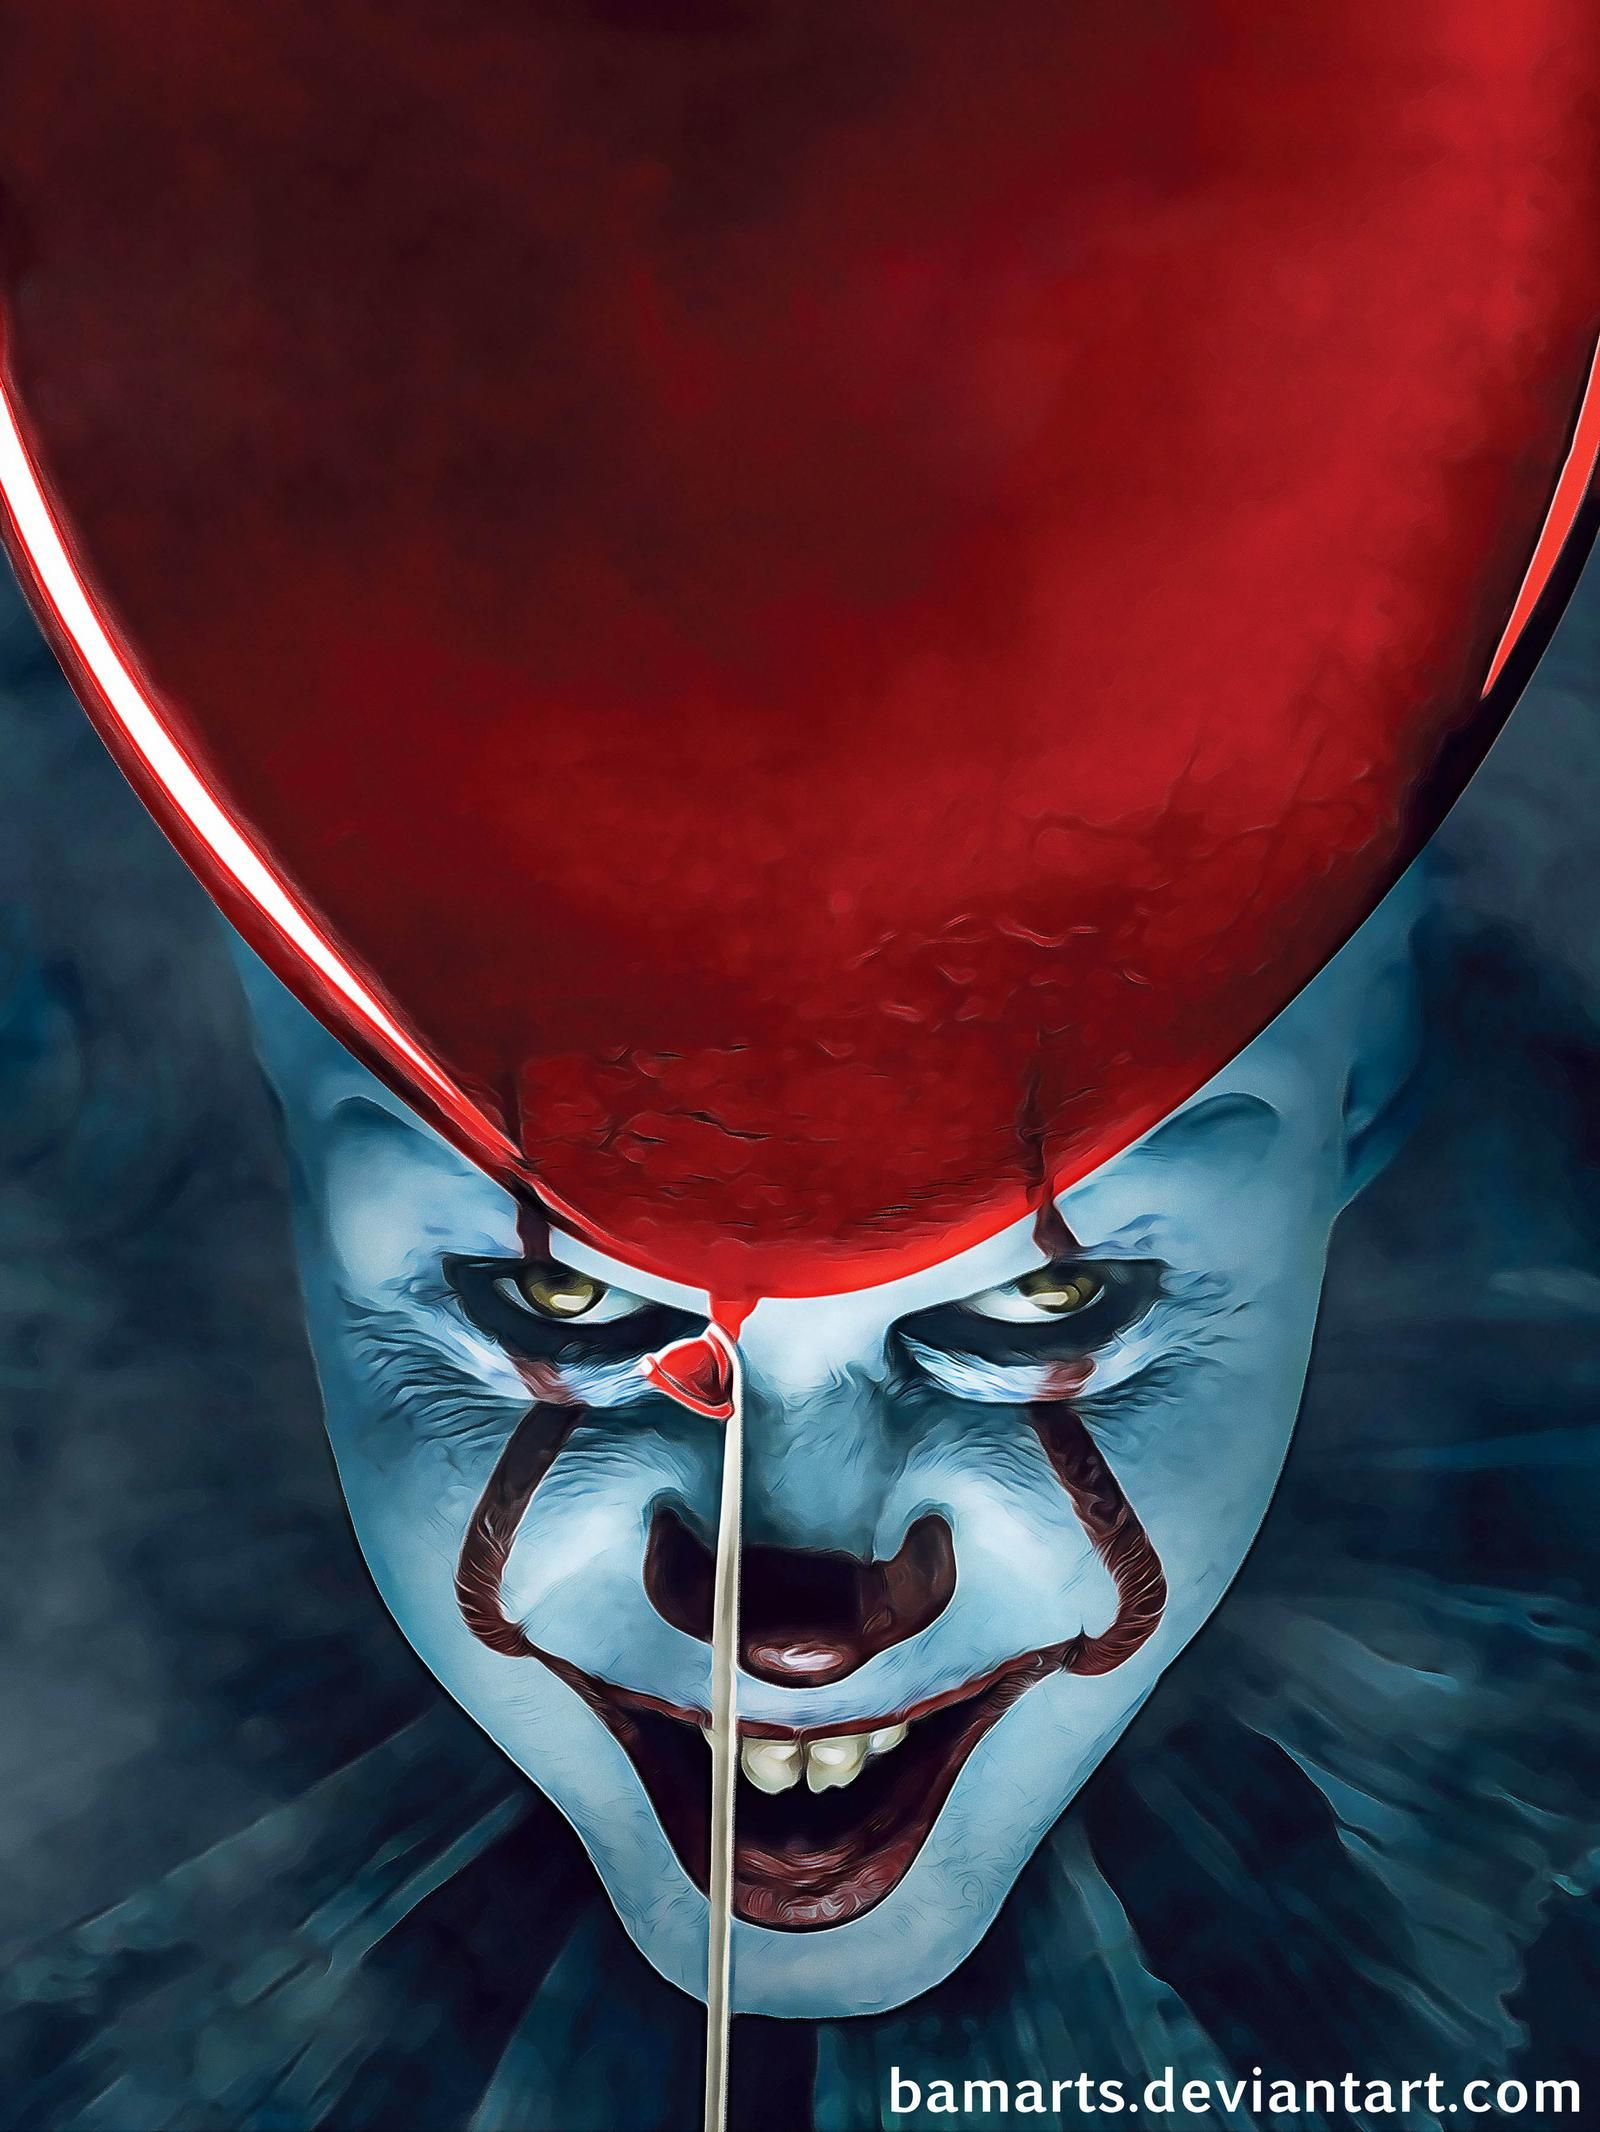 It Pennywise Final By Bamarts On Deviantart Pennywise The Dancing Clown Horror Art Pennywise The Clown